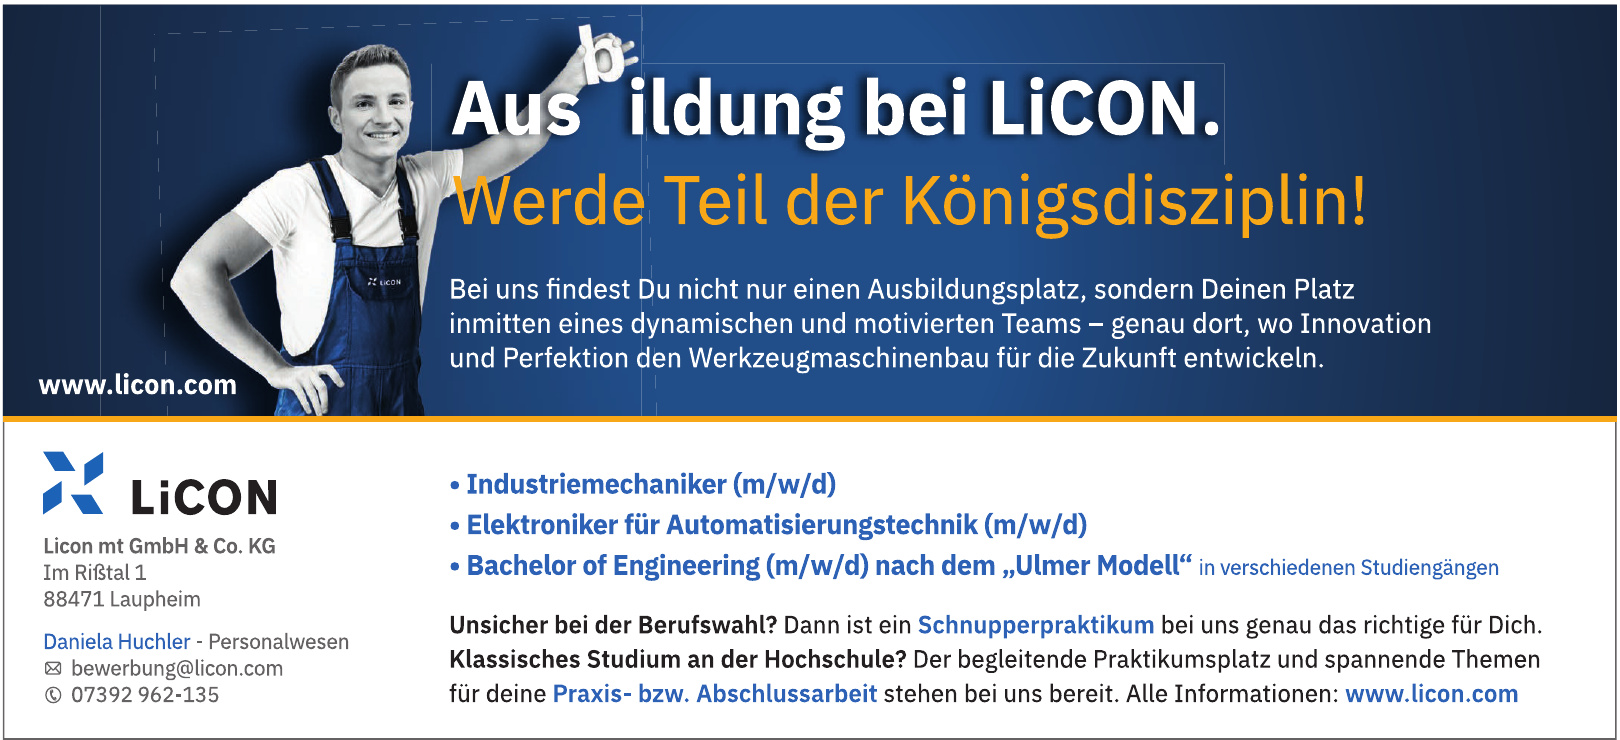 Licon mt GmbH & Co. KG